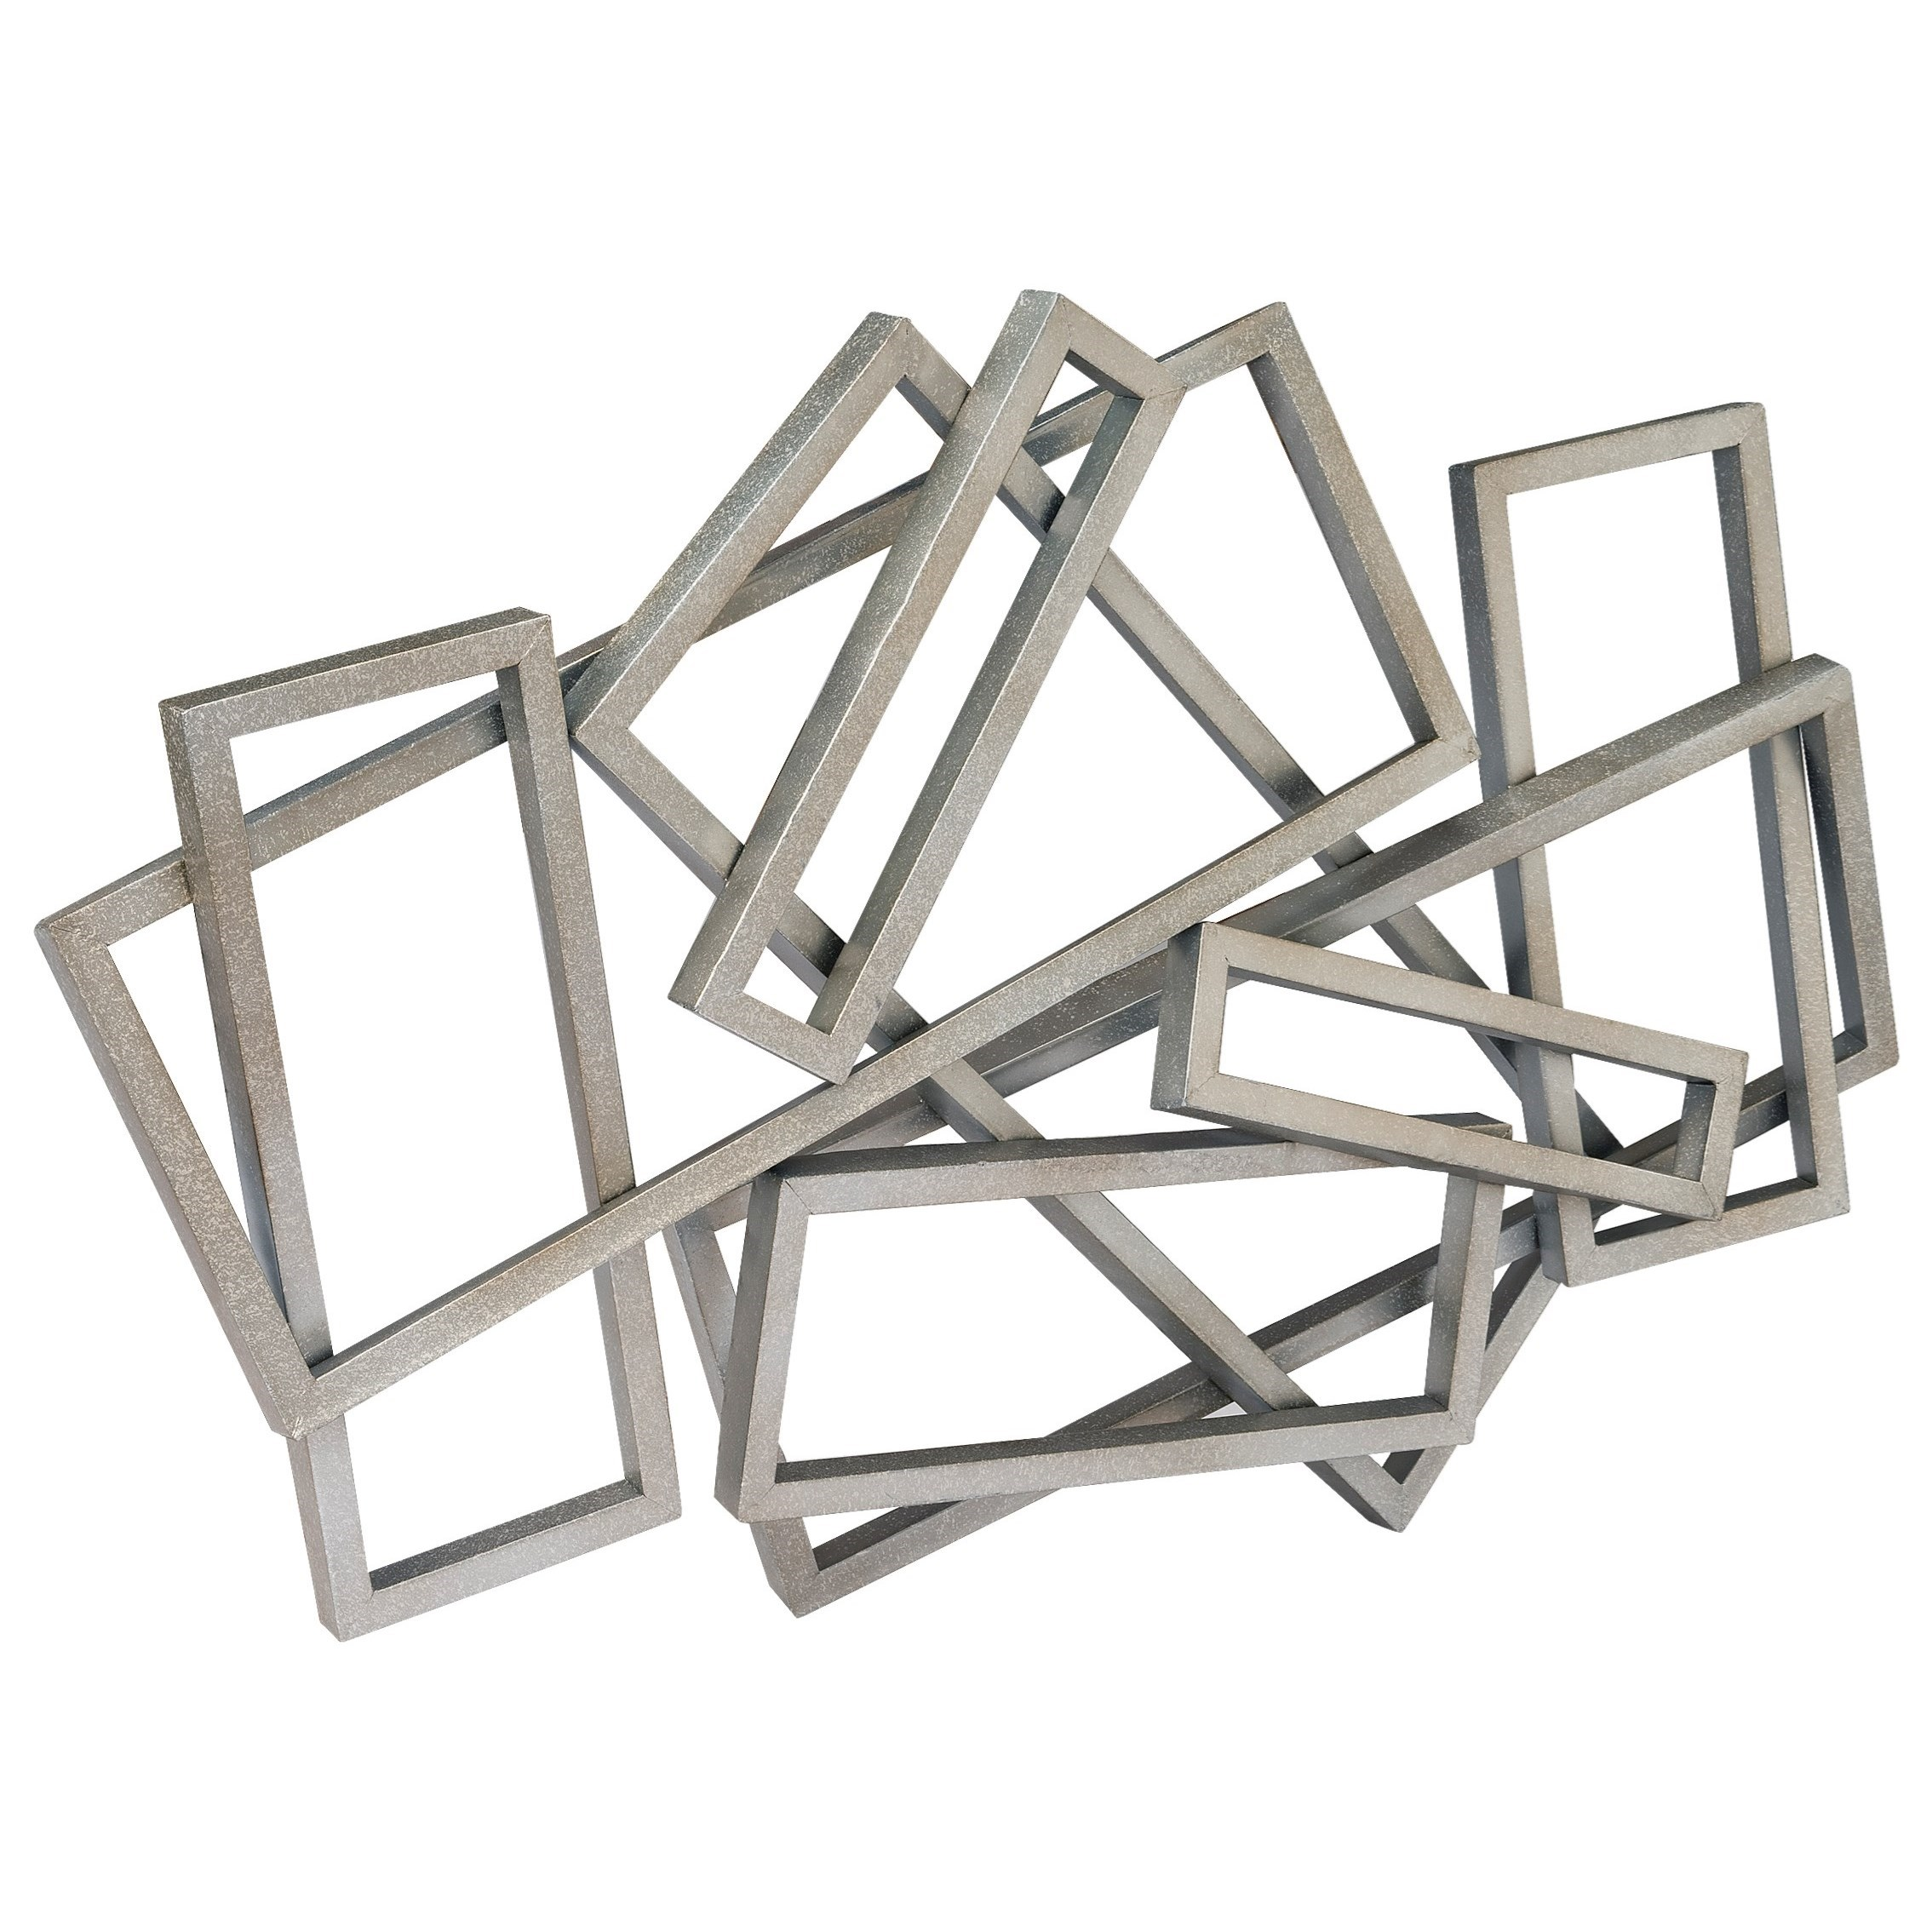 Wall Décor Metal Rectangles Wall Decor by Moe's Home Collection at Wilson's Furniture